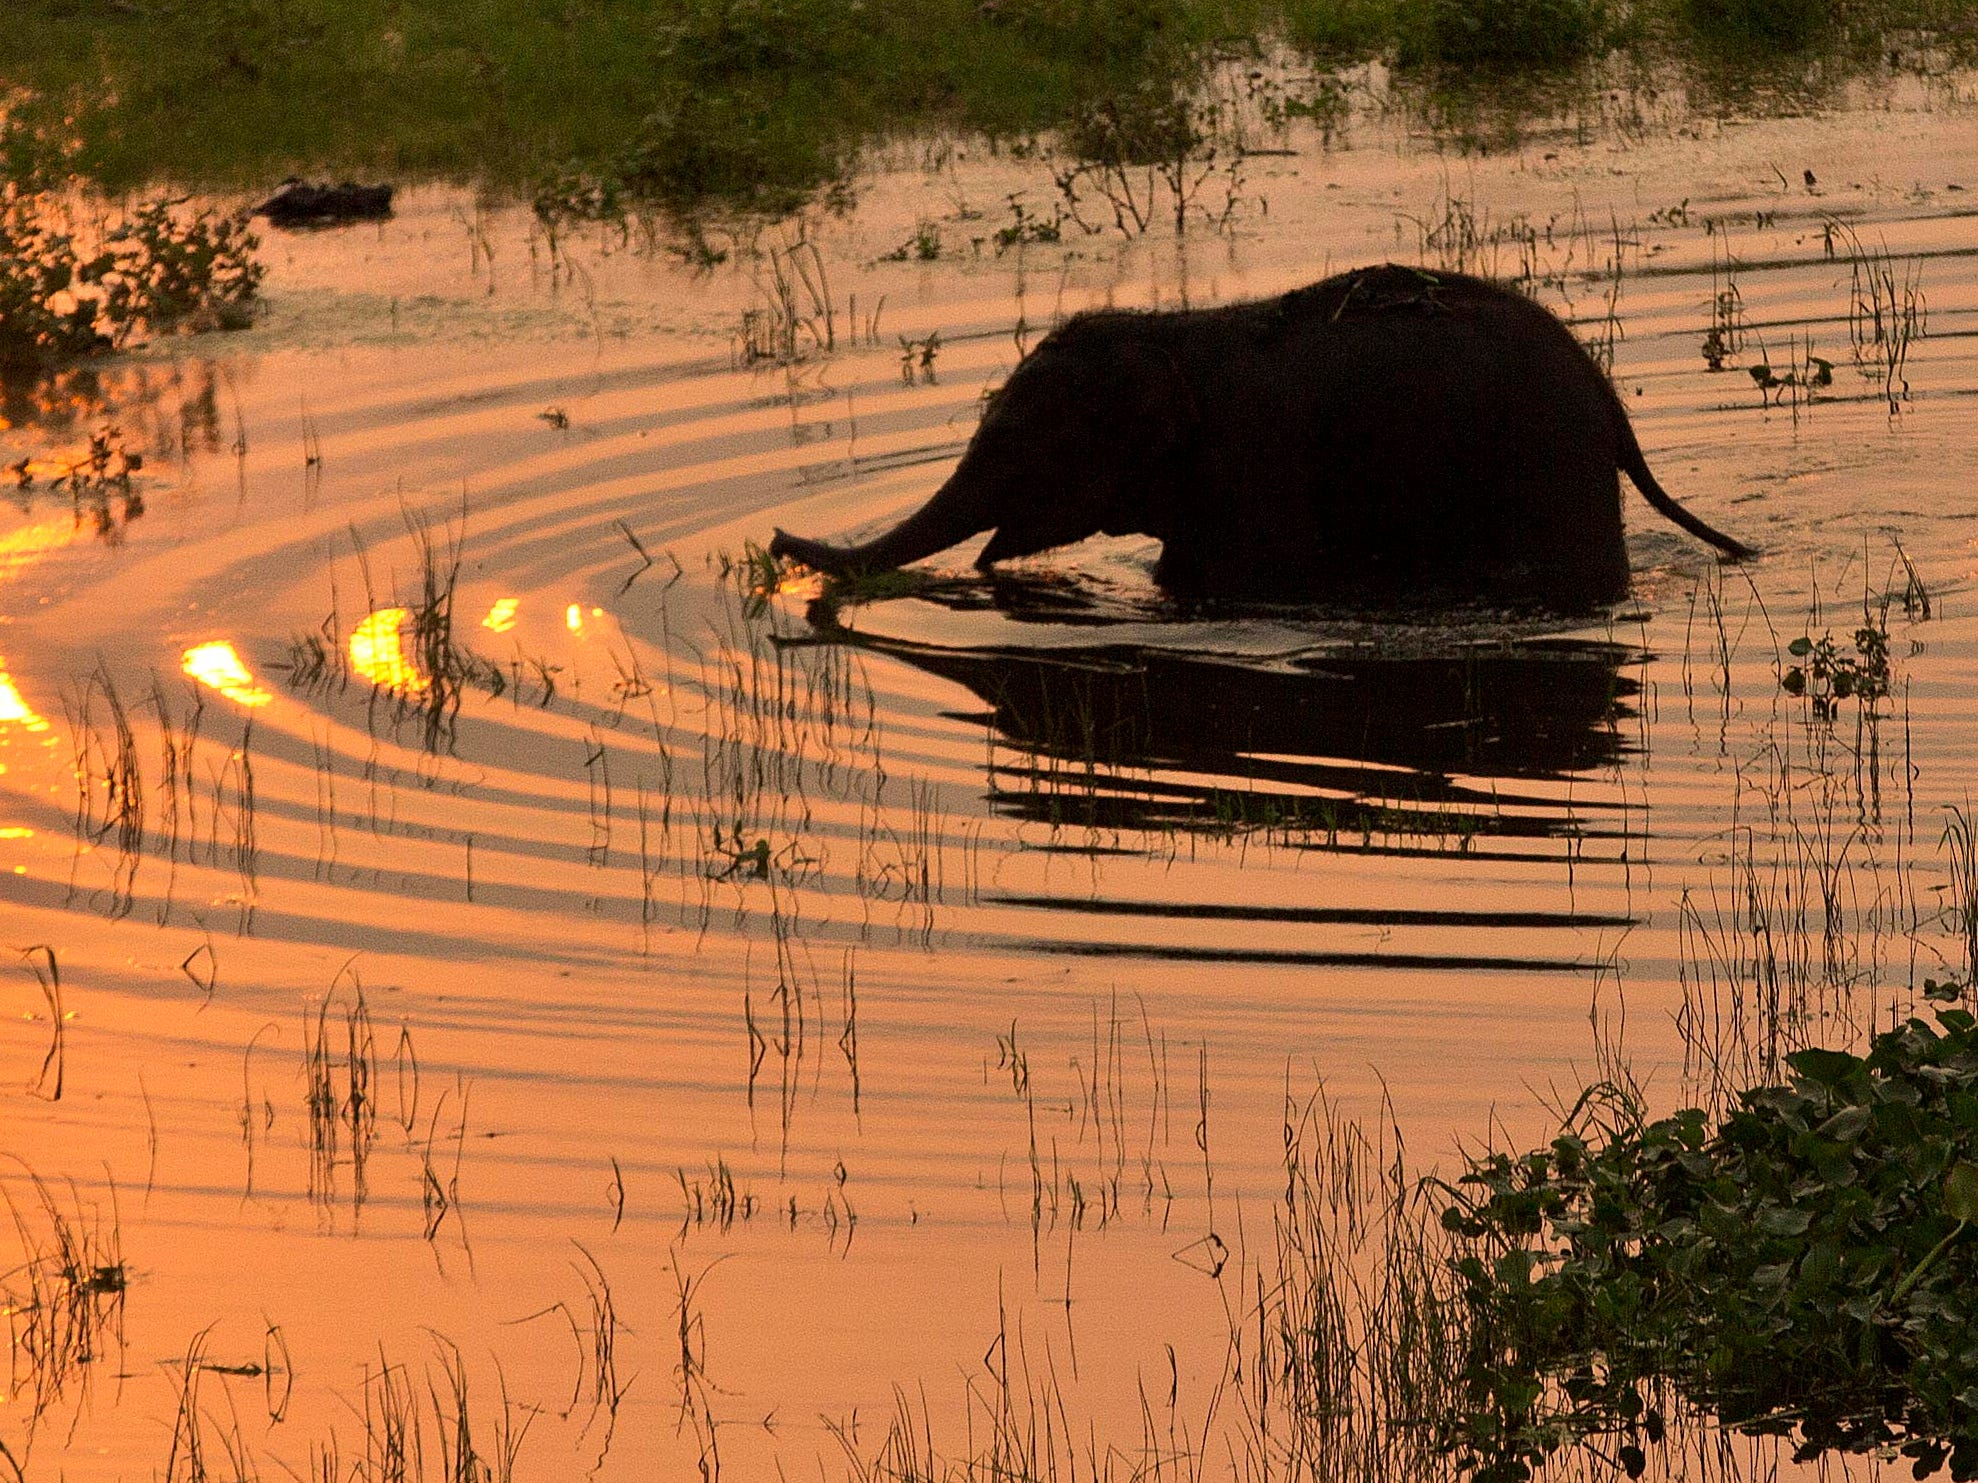 A baby wild elephant crosses the water to return to the forest after being rescued at Deepor Beel wildlife sanctuary in Gauhati, India, Friday, May 10, 2019. The elephant had gotten stuck in the waters of Deepor Beel after it was separated from a herd of wild elephant that came down in search of food last night.